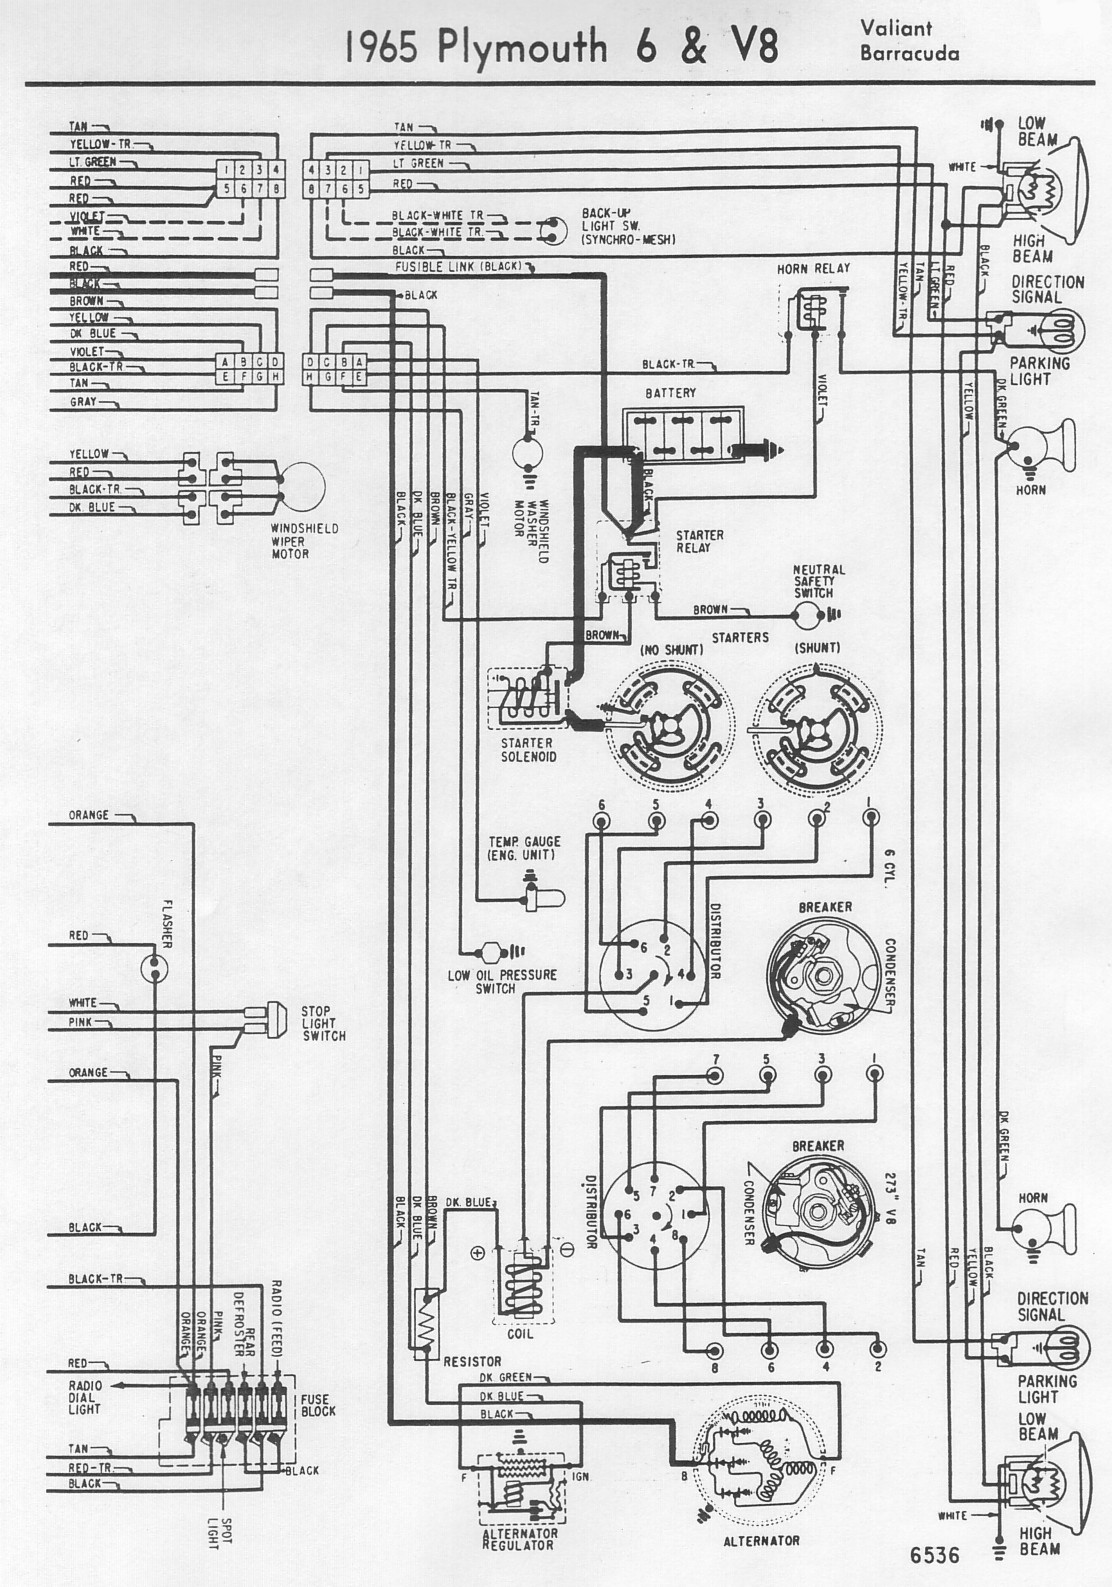 Free Auto Wiring Diagram Plymouth Valiant Or